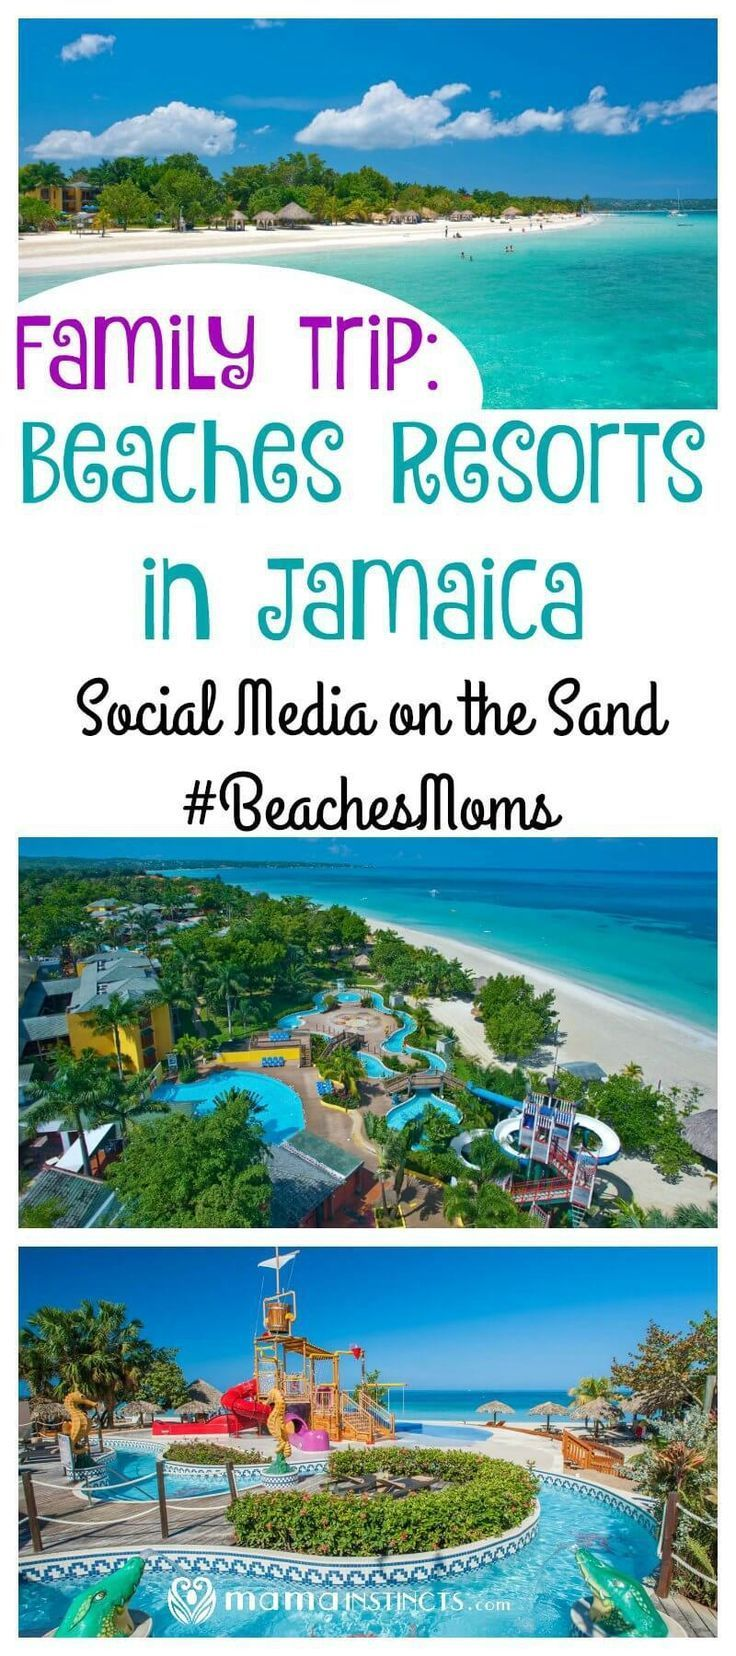 Family trip Beaches Resorts in Jamaica Social Media on the Sand